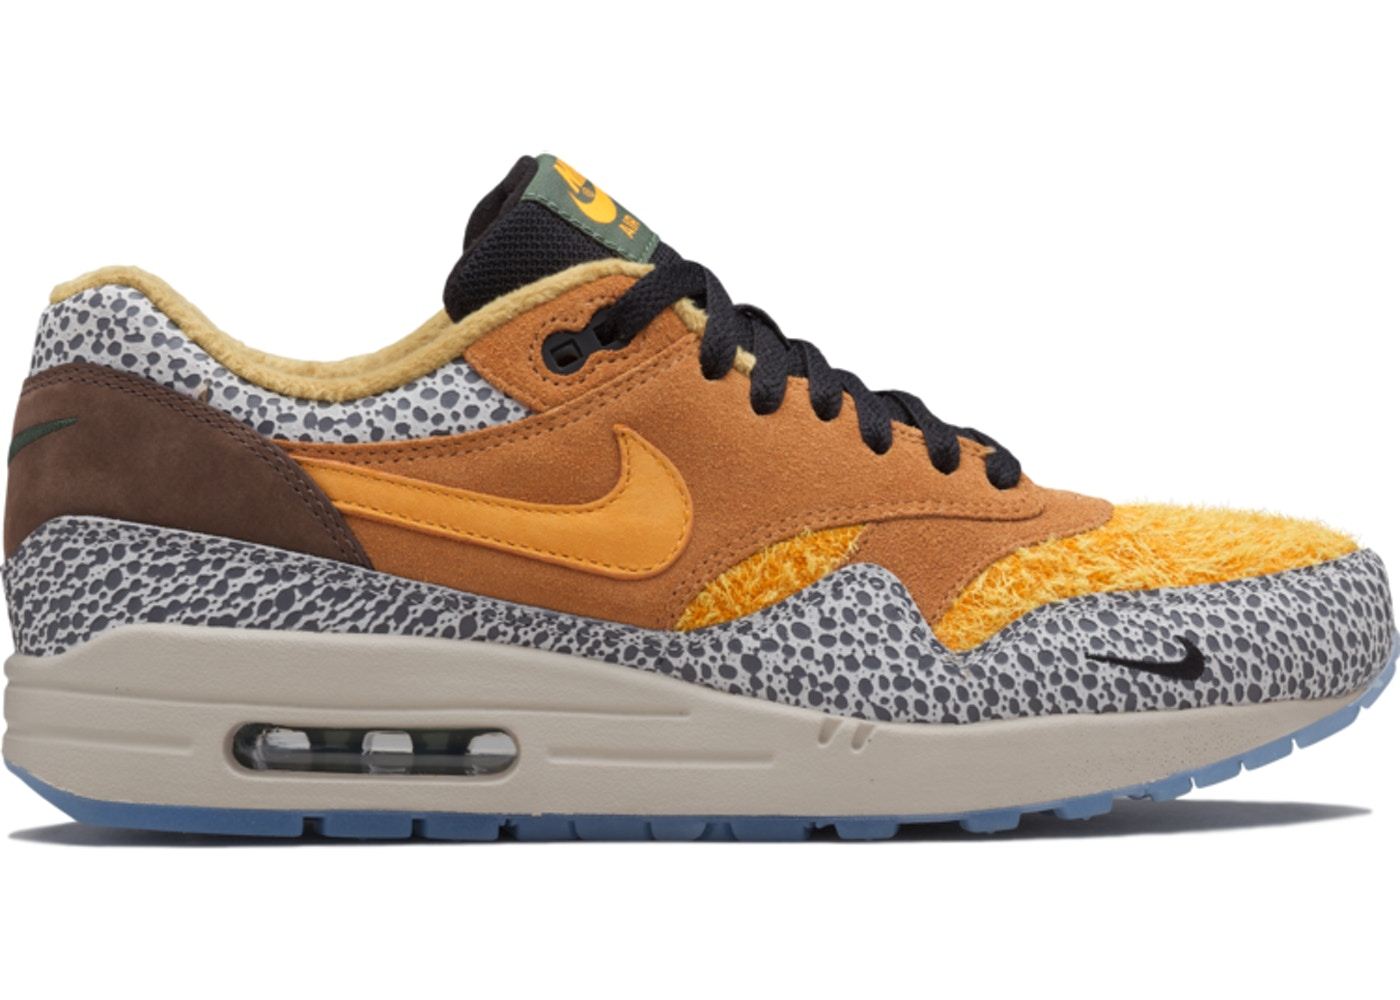 low priced c5ca3 37a22 Air Max 1 Atmos Safari (2016) - 665873-200